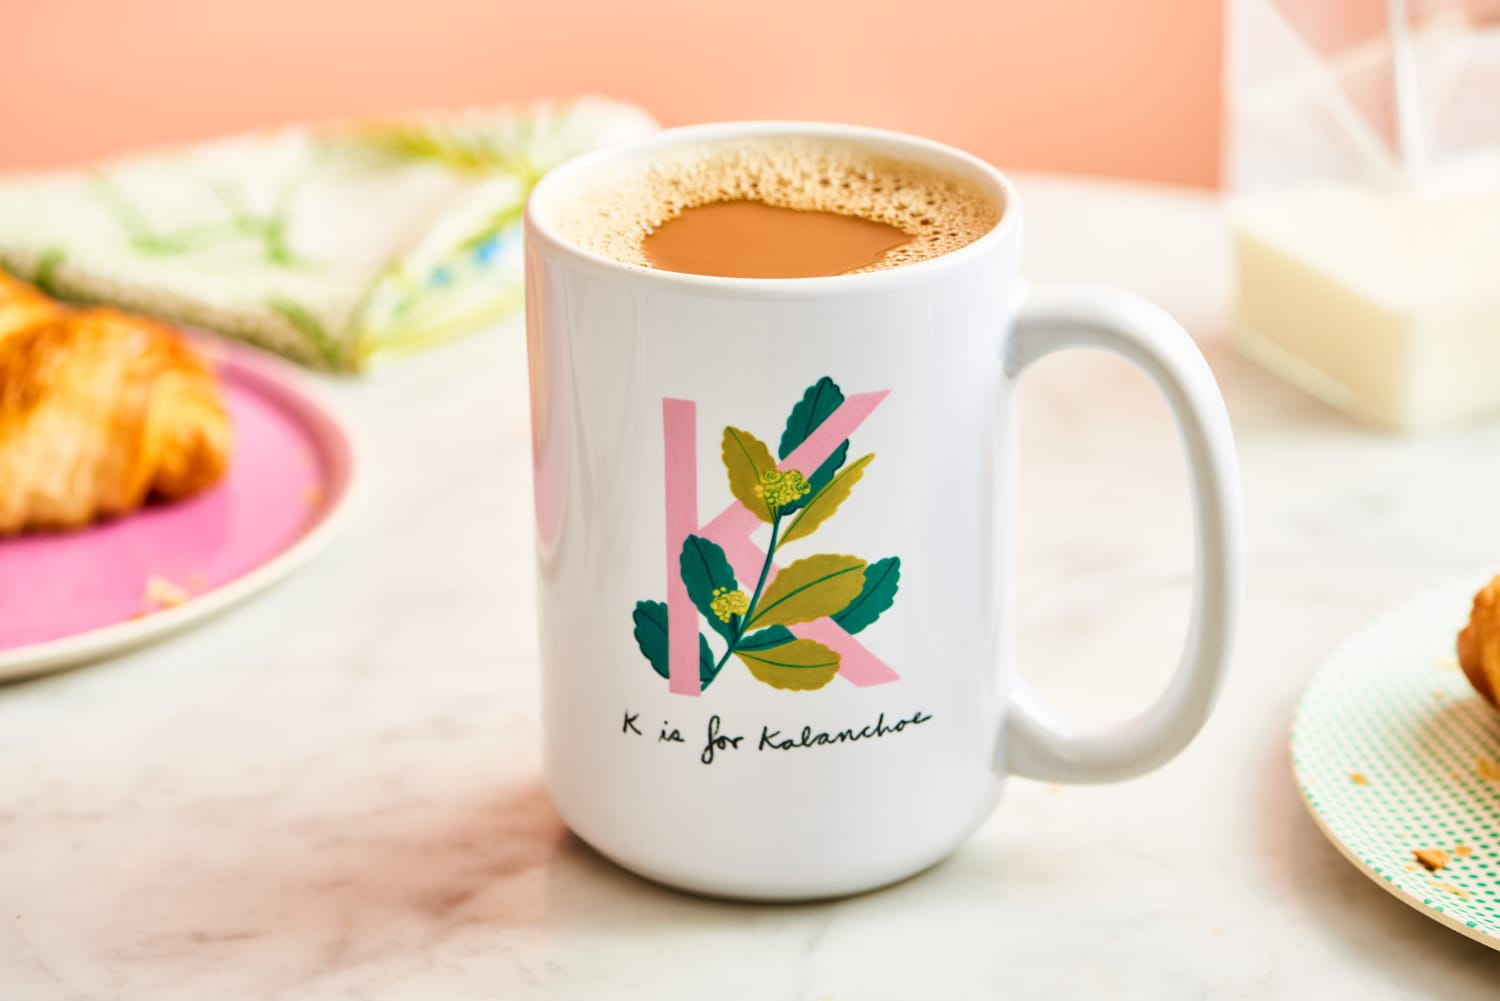 7 Monogram Mugs That Get Our Seal of Approval (And Many Are On Sale!)